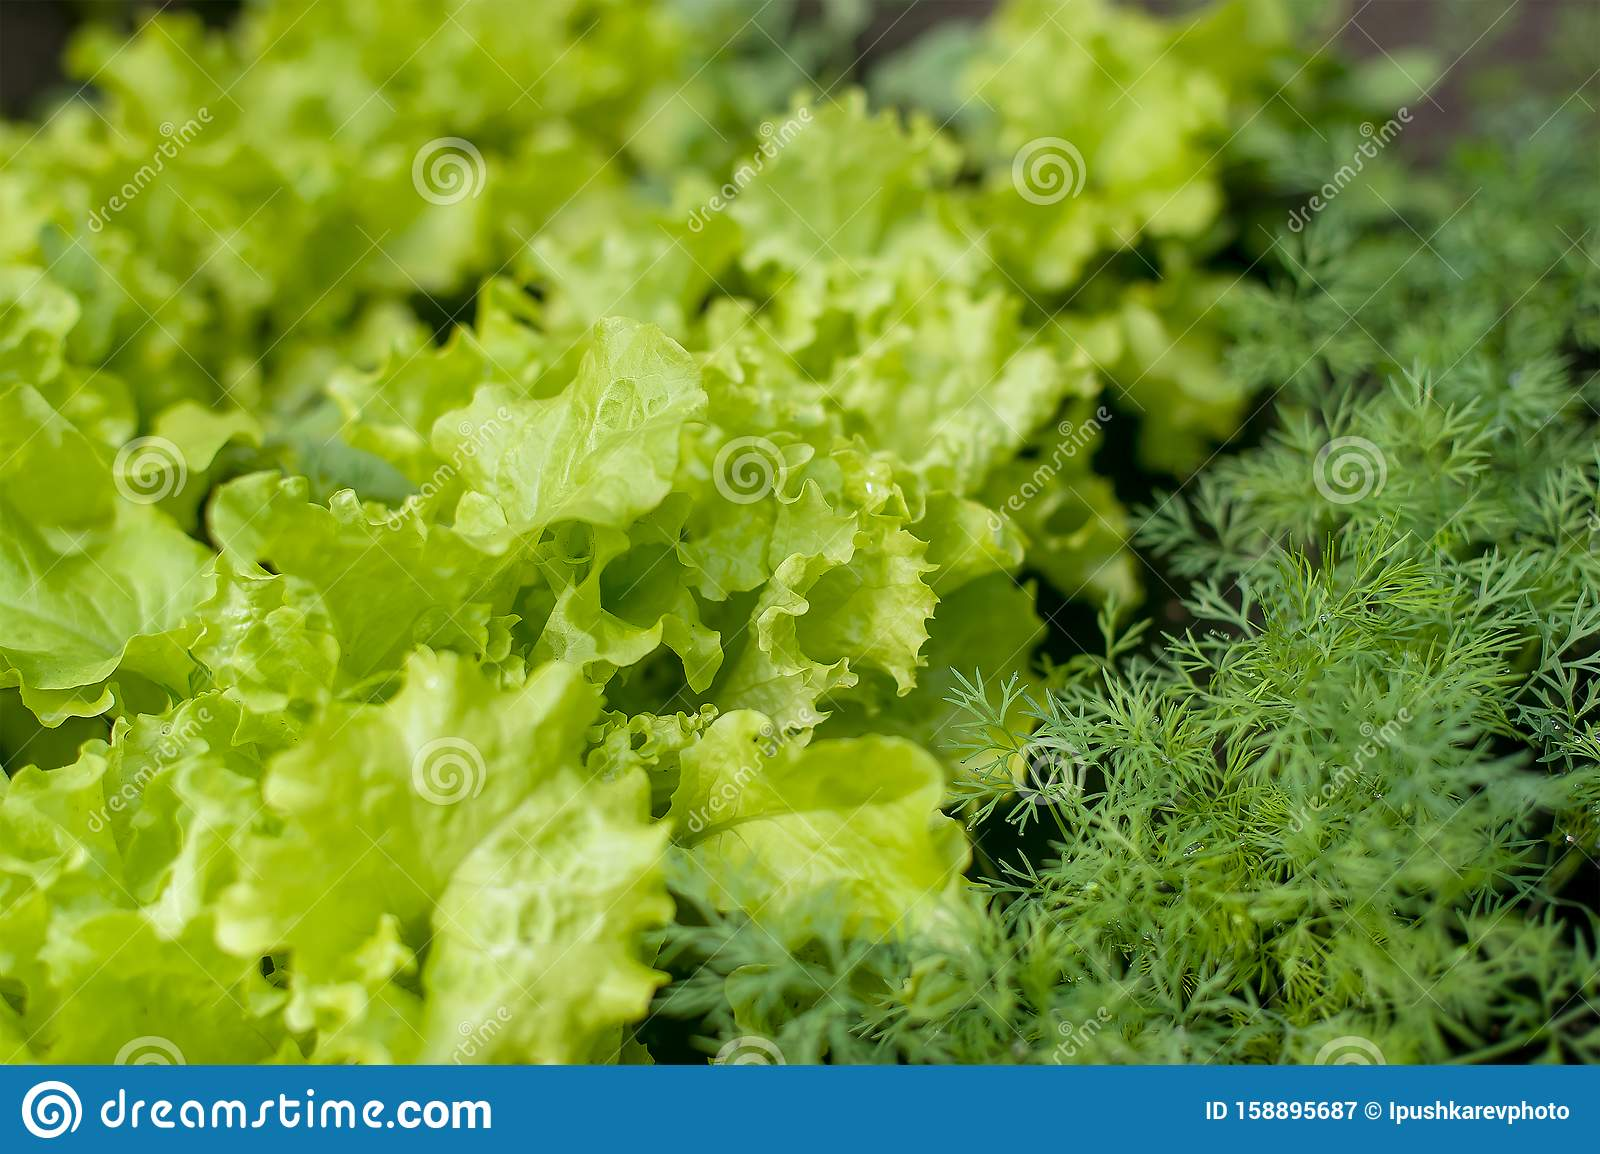 Young fresh lettuce with fragrant dill in ecological home farm. Eco-friendly formal vegetable backyard garden. Green organic